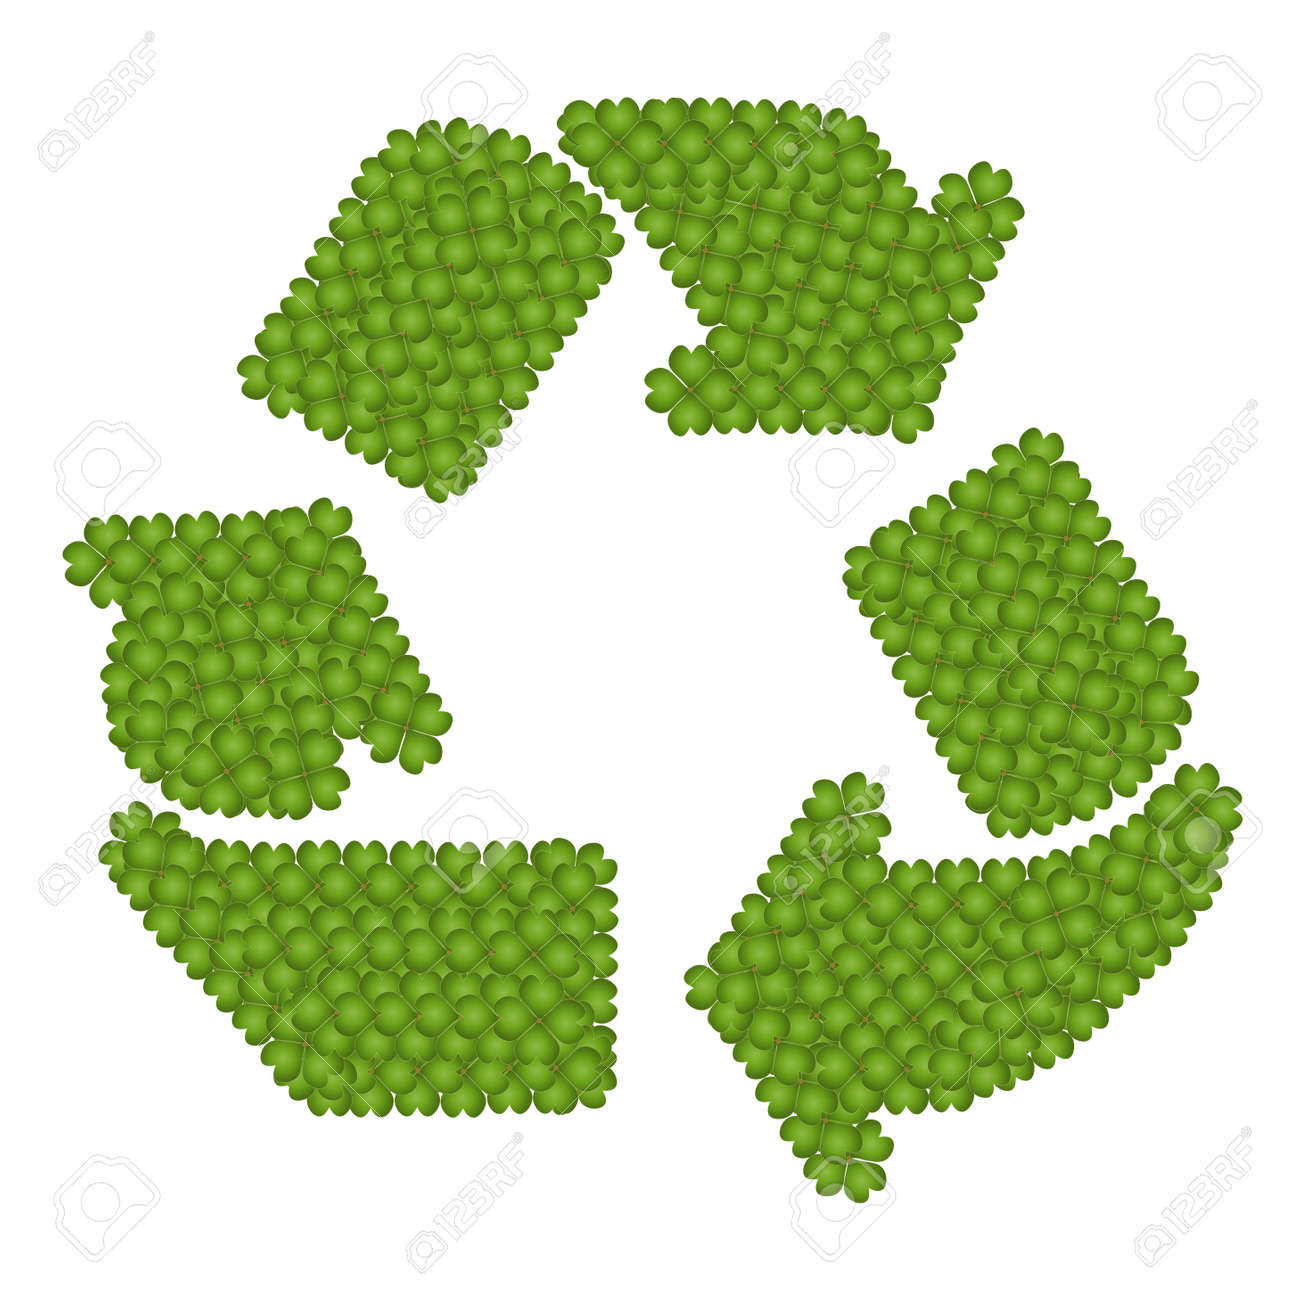 Ecology Concept, Fresh Green Four Leaf Clover Forming in The  Recycling Sign Isolated on White Background Stock Photo - 16119466